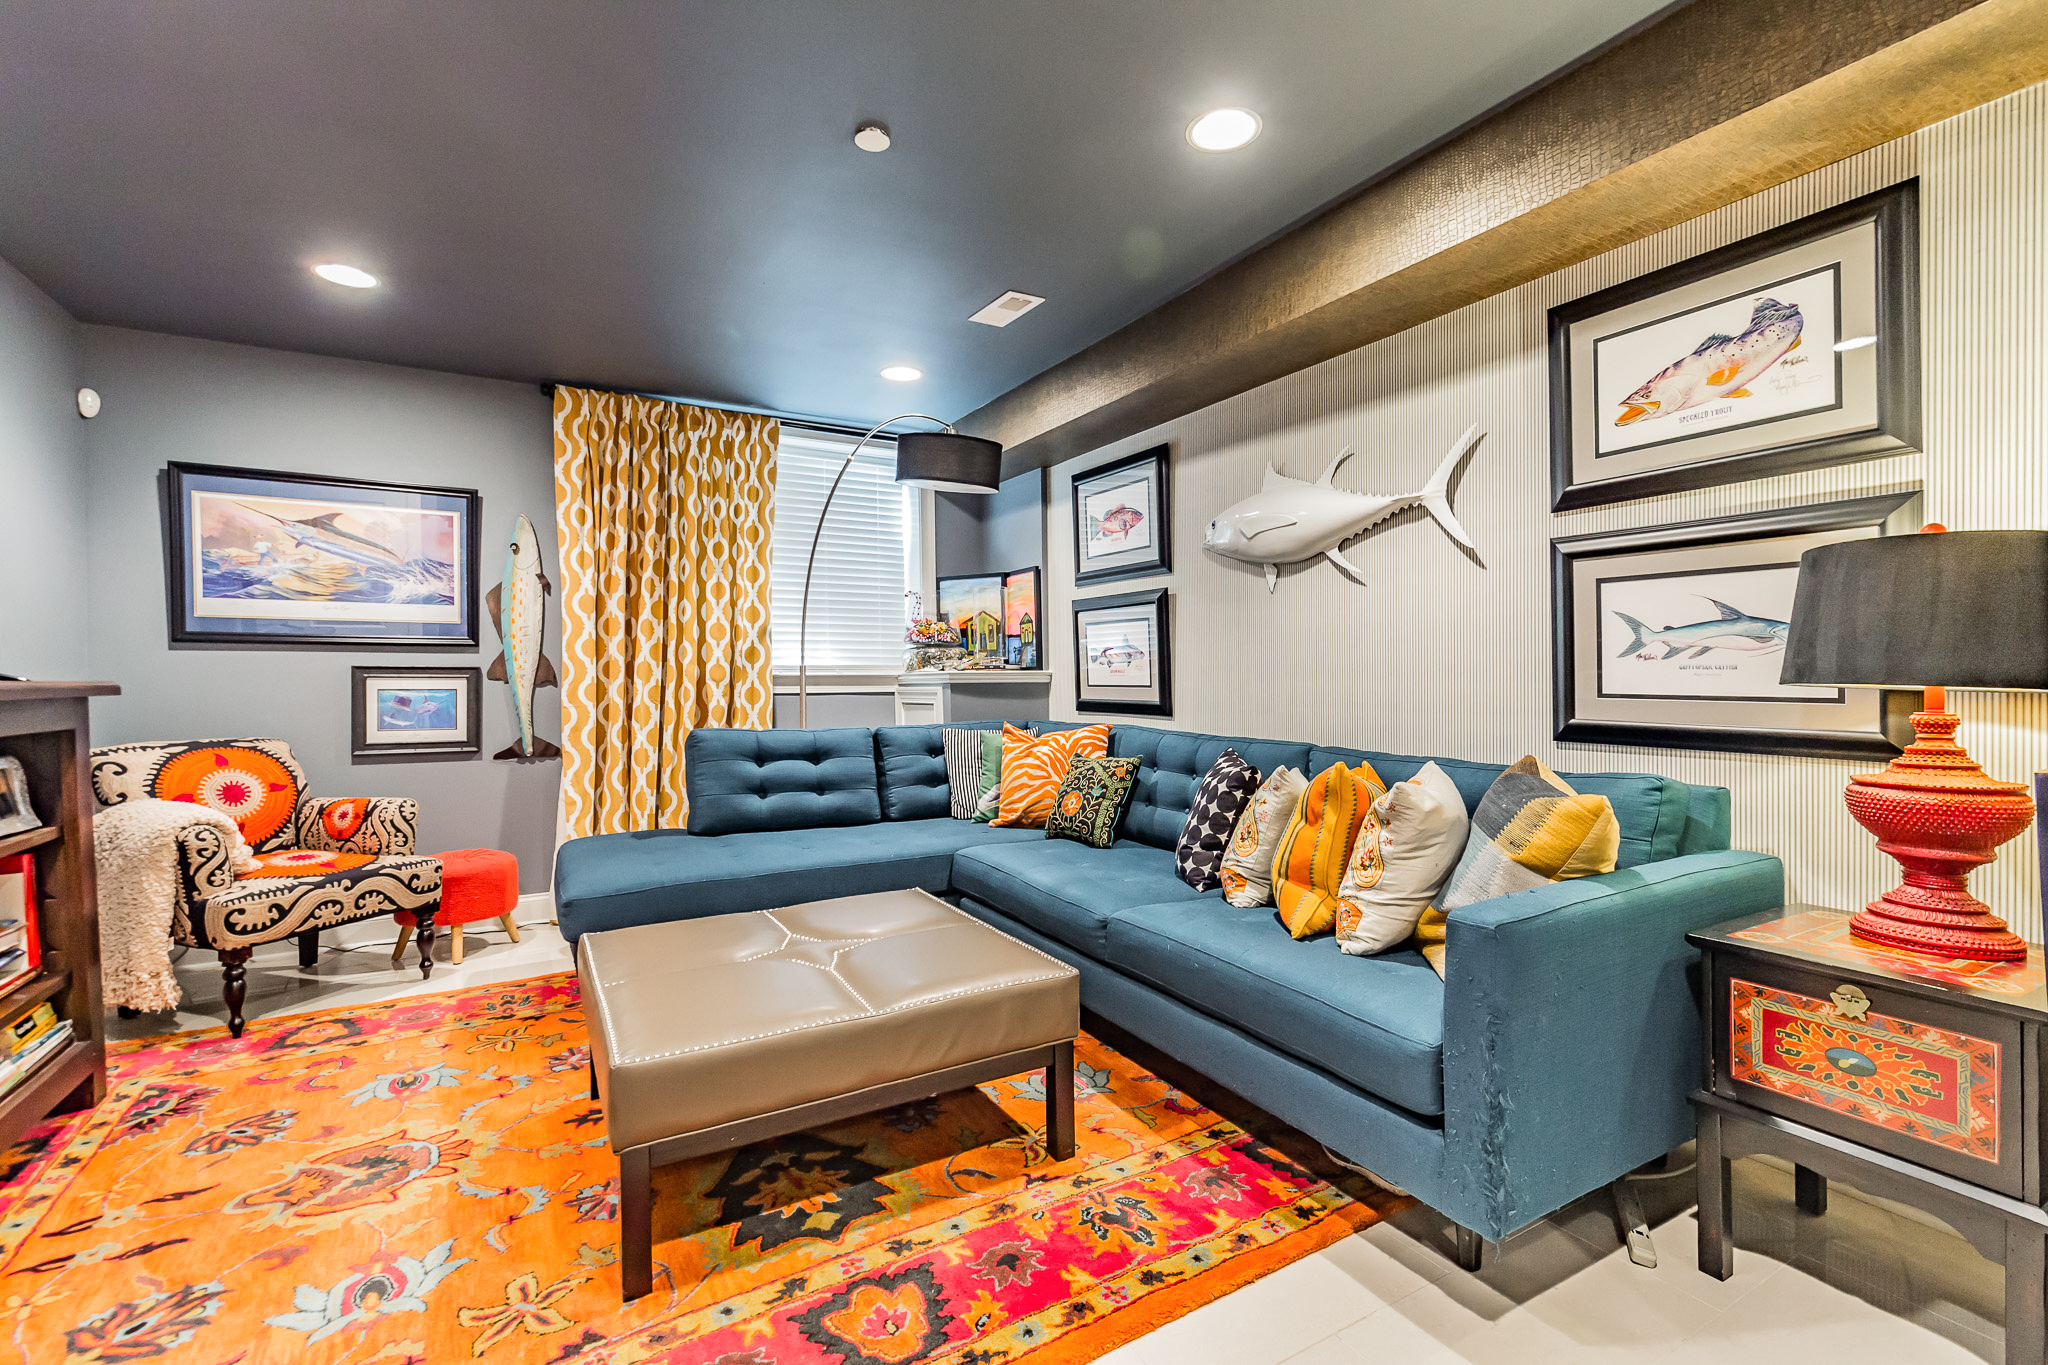 Philadelphia Interior Design - Curbed Philly